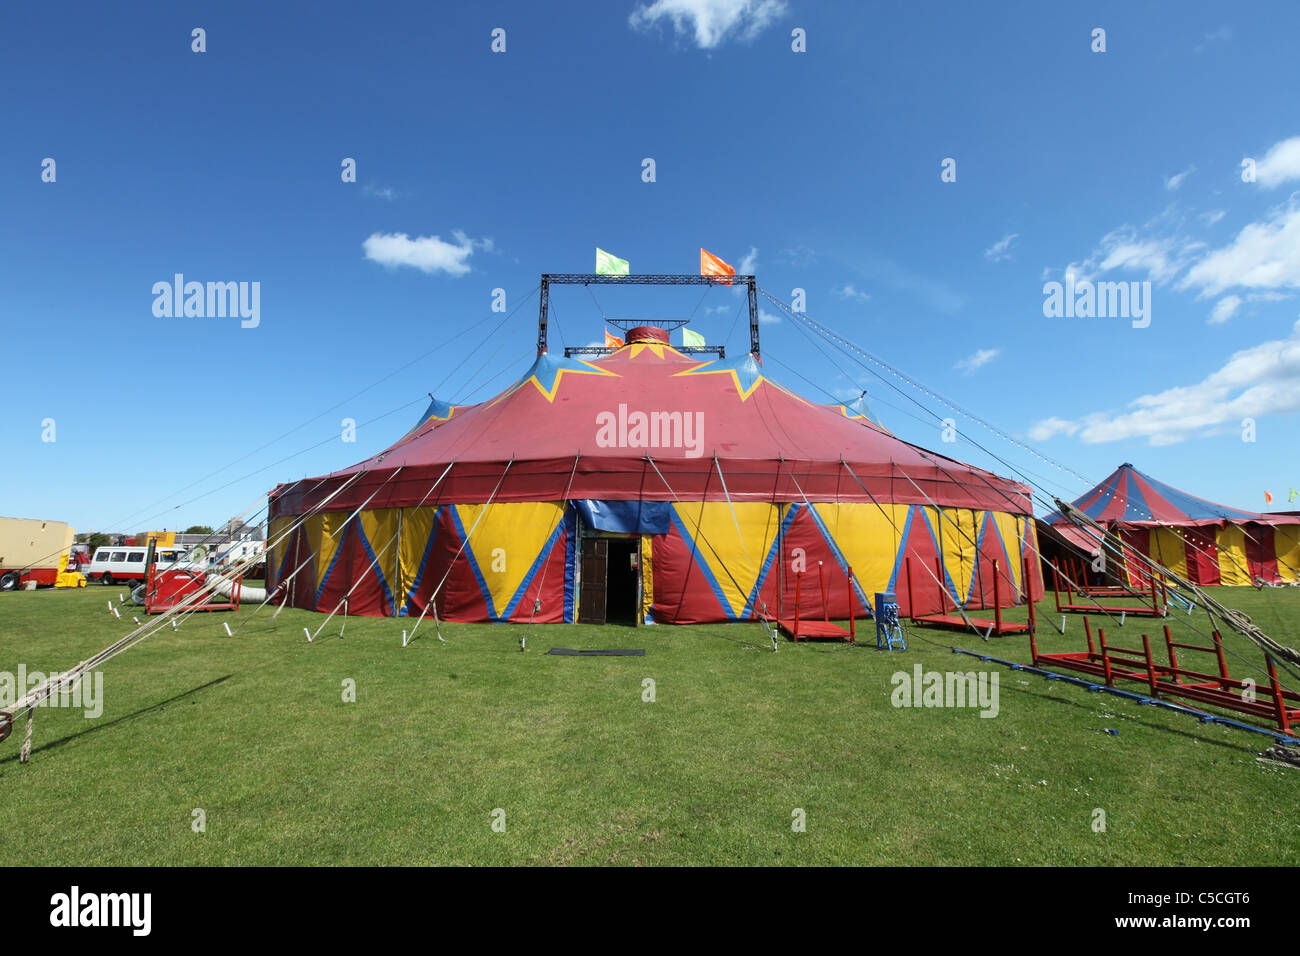 Zippos circus tent at a performance in the UK - Stock Image